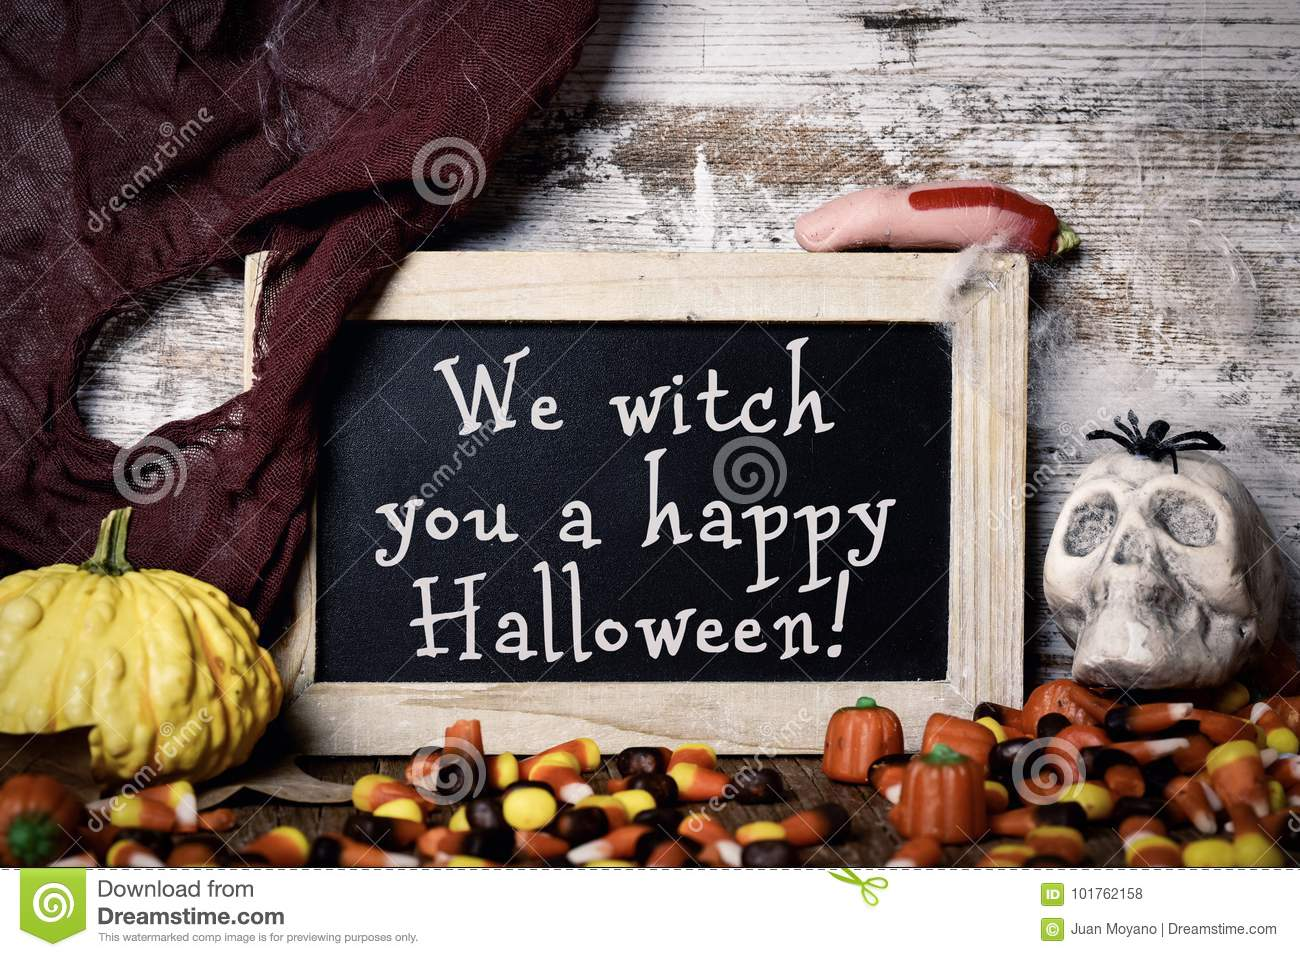 Candies and text We witch you a happy Halloween